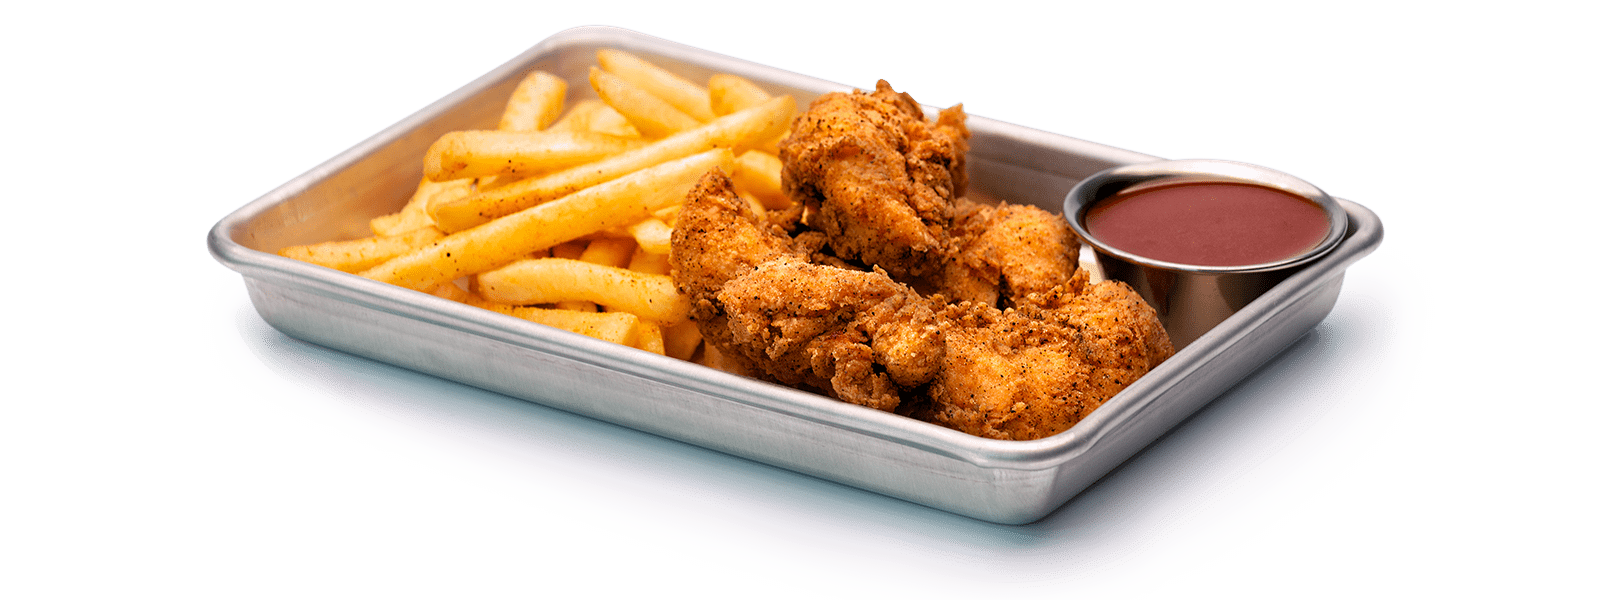 Chicken Tenders on platter with sauce